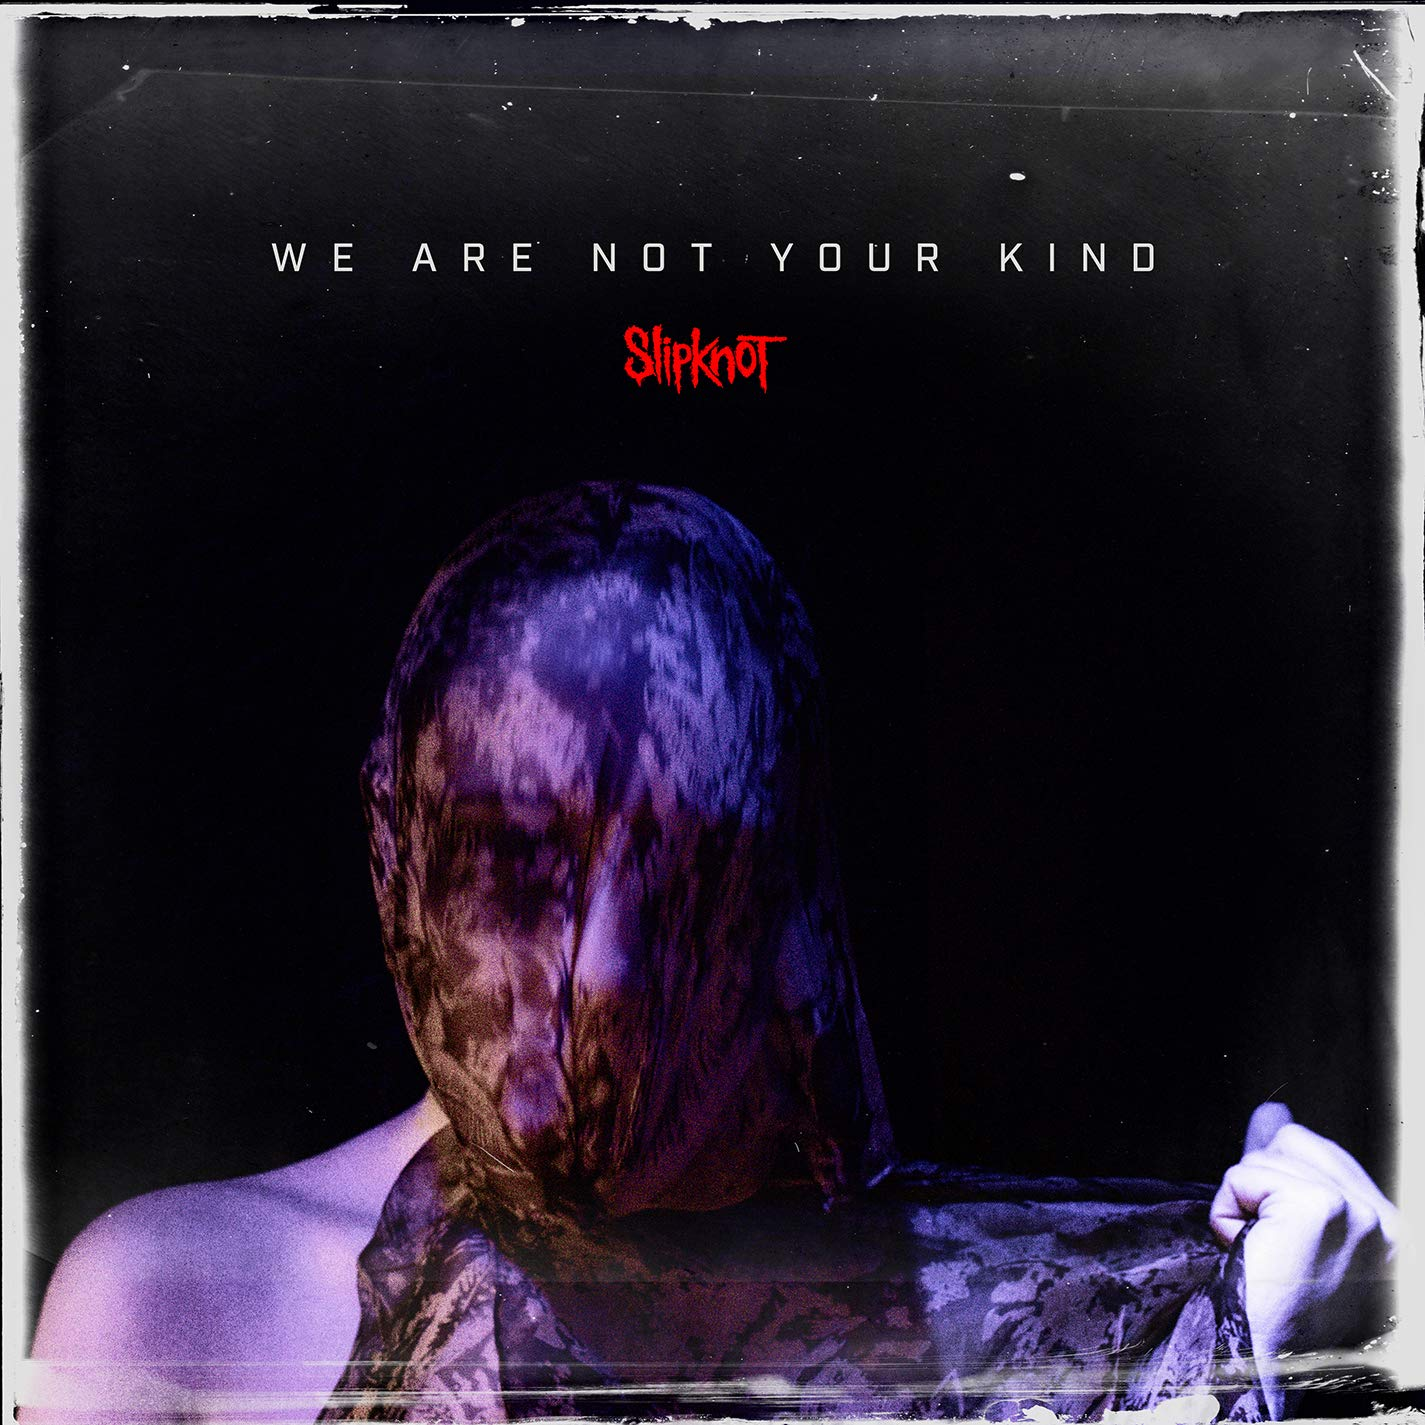 We Are Not Your Kind (with download card) by ROADRUNNER RECORDS